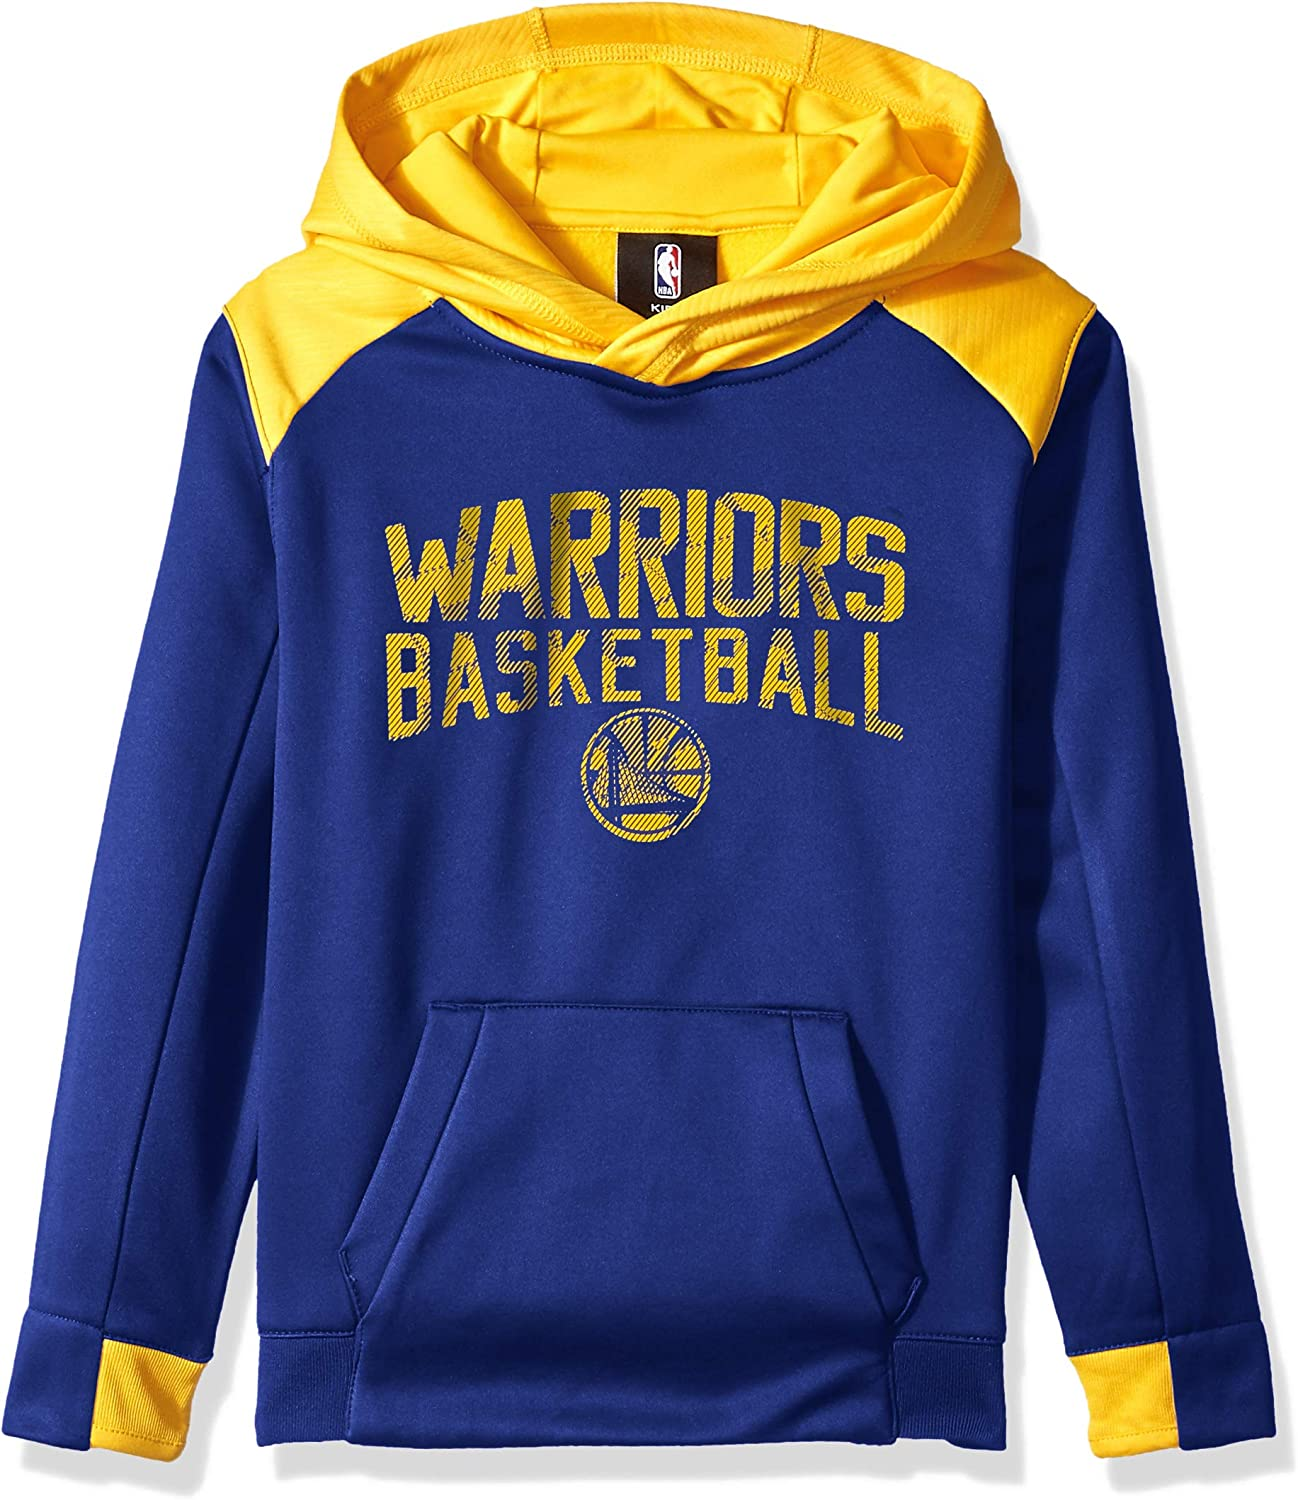 Kids Medium Blue NBA by Outerstuff NBA Kids /& Youth Boys Golden State Warriors Off the Court Performance Pullover Hoodie 5-6